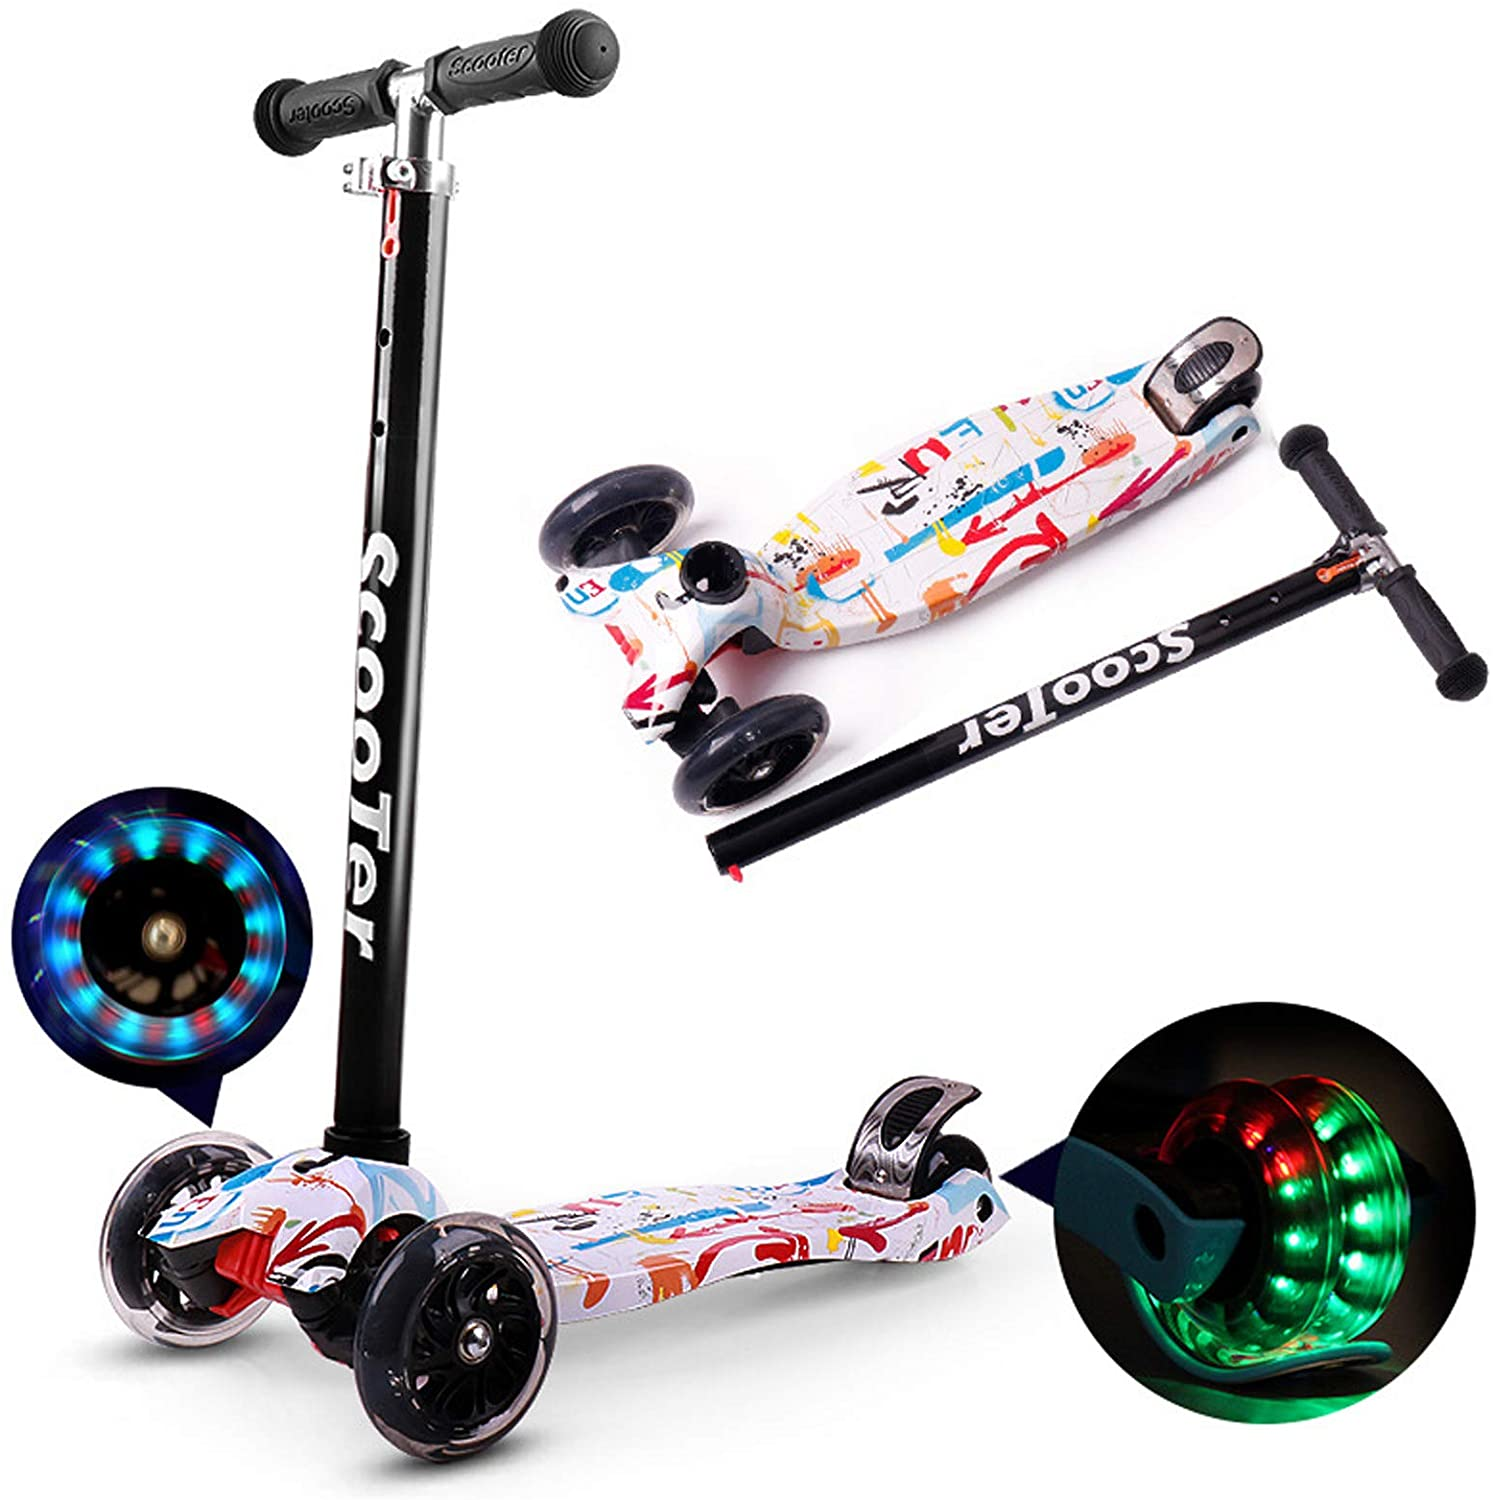 Lixada Foldable Scooter for Kids 3 Wheel Scooter with LED Light Up Wheels Kick Scooter for Toddlers 3-8 Year with Adjustable Height Lightweight Scooter